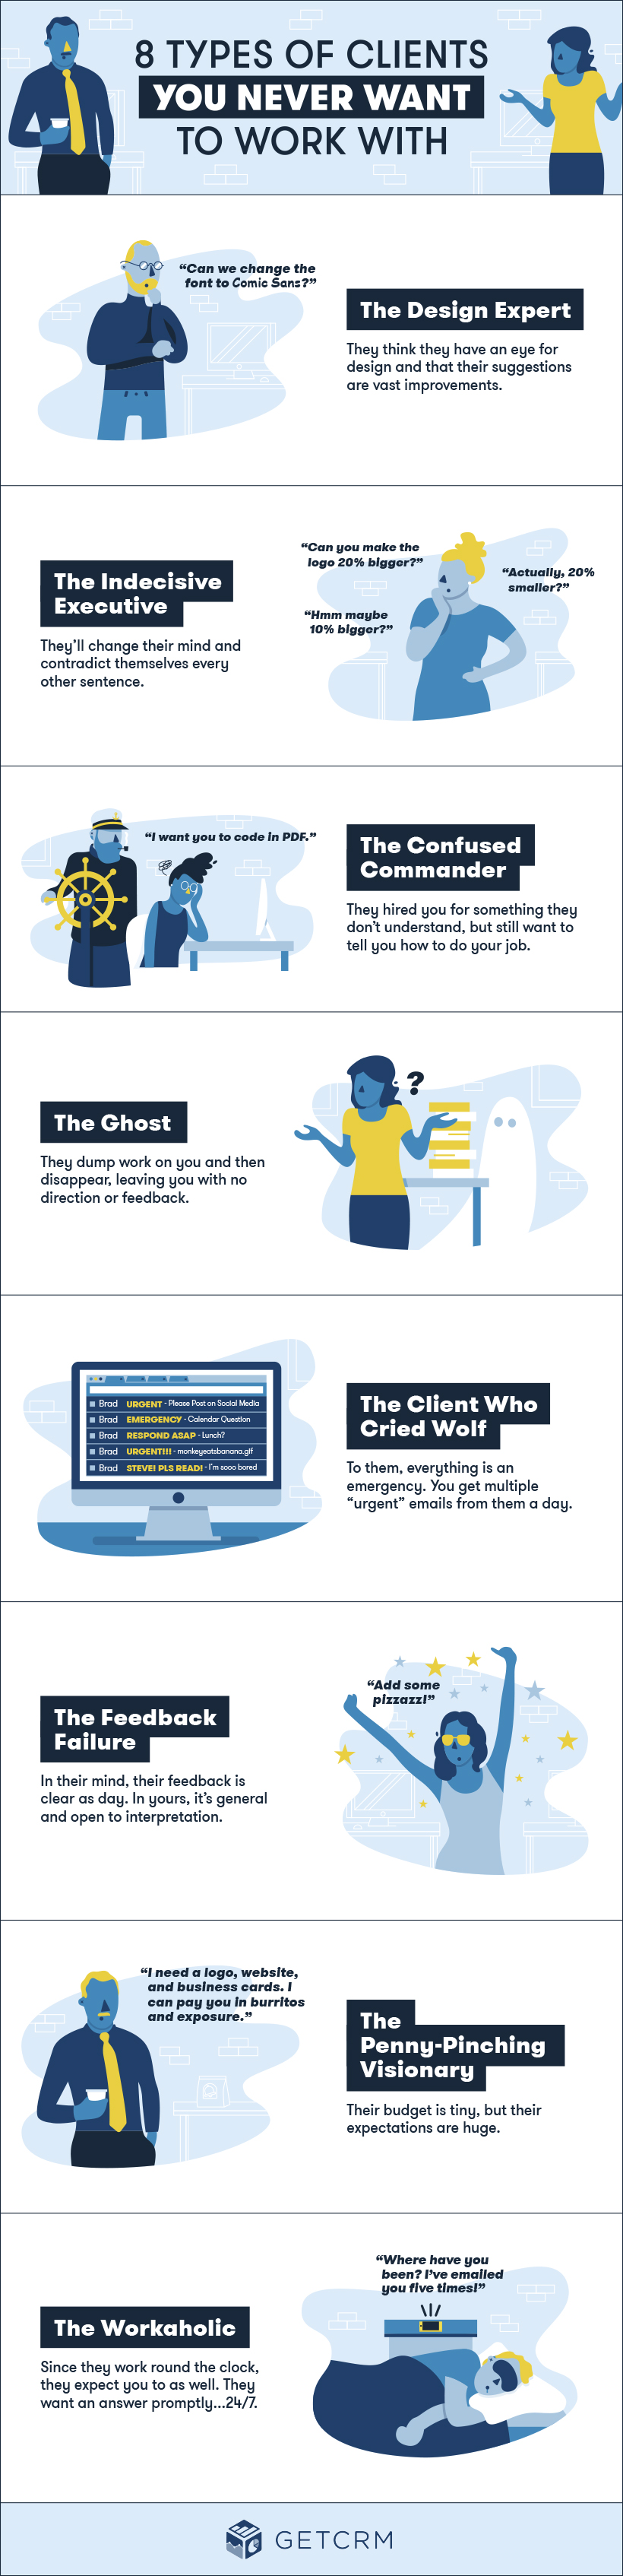 8 Clients You Don't Want To Work With [Infographic]